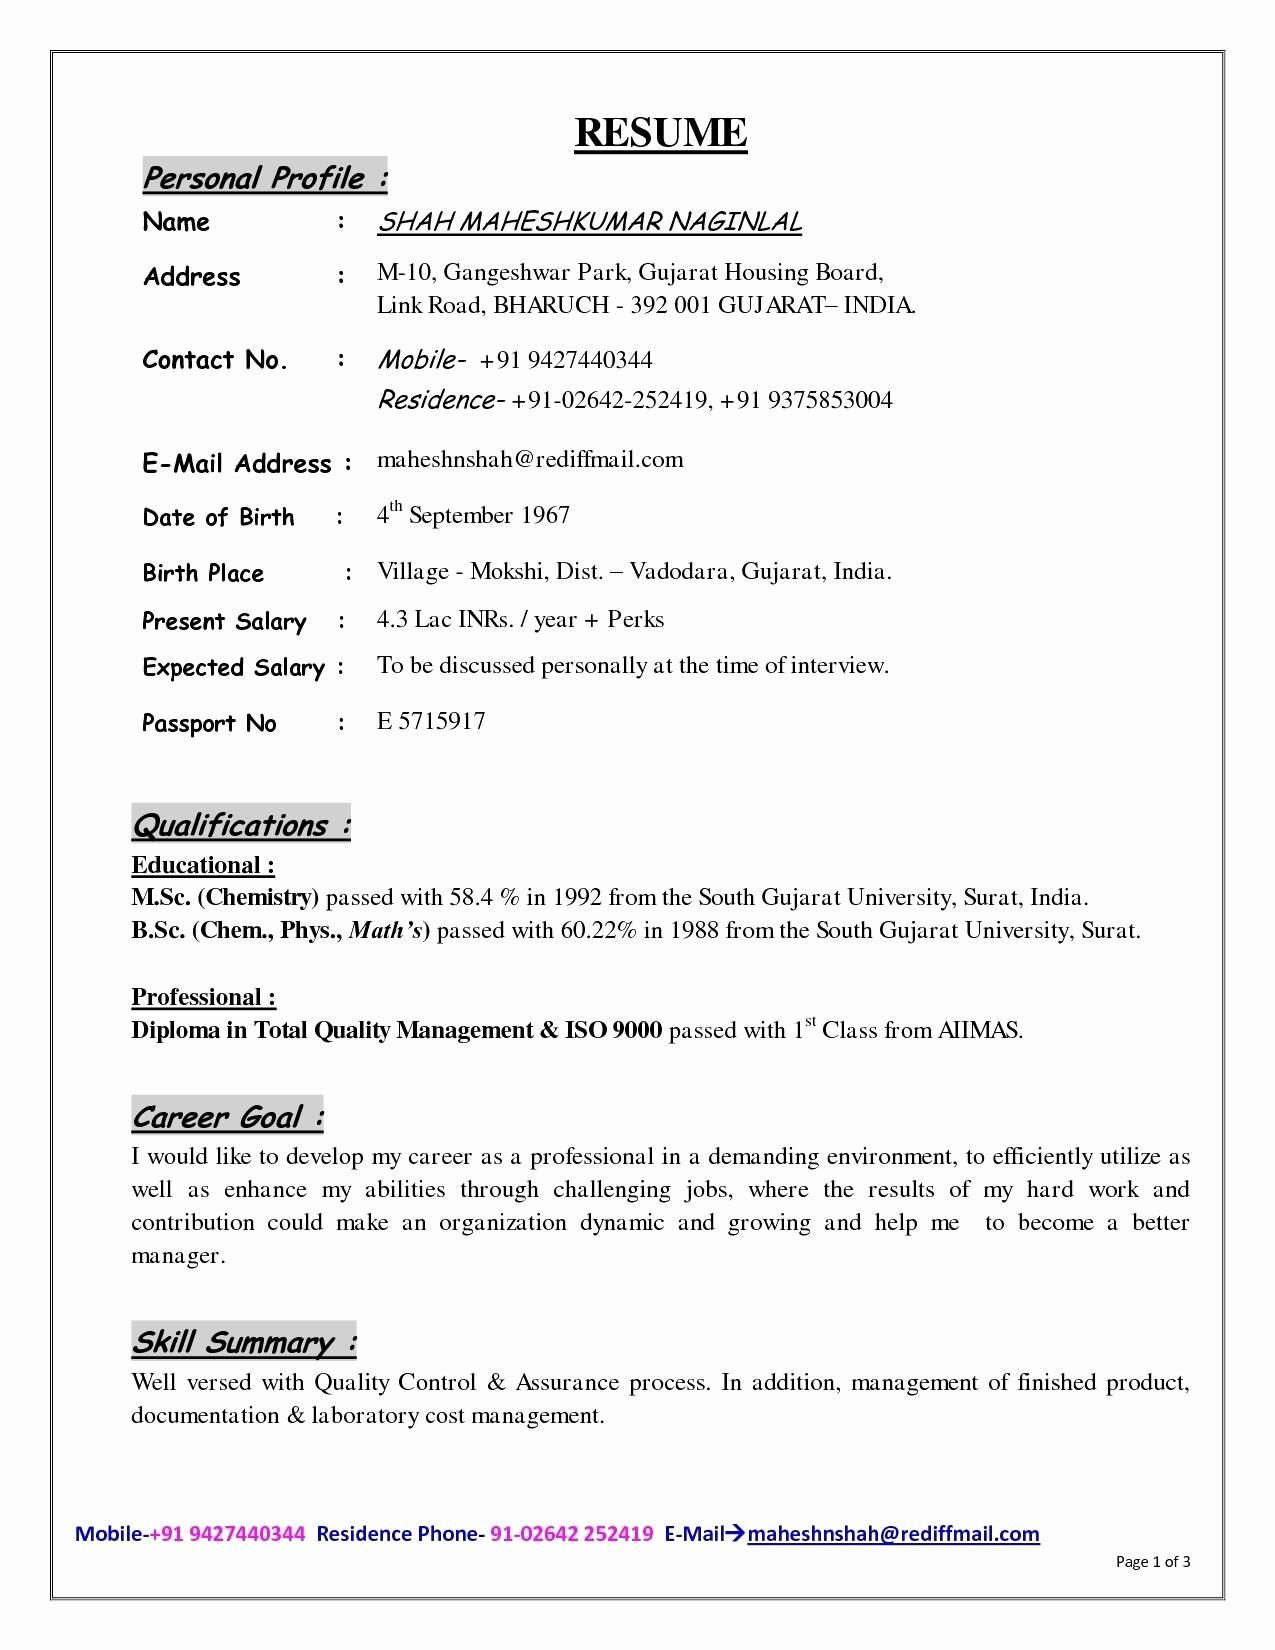 sample resume format for mechanical engineering freshers filetype doc new new mechanical